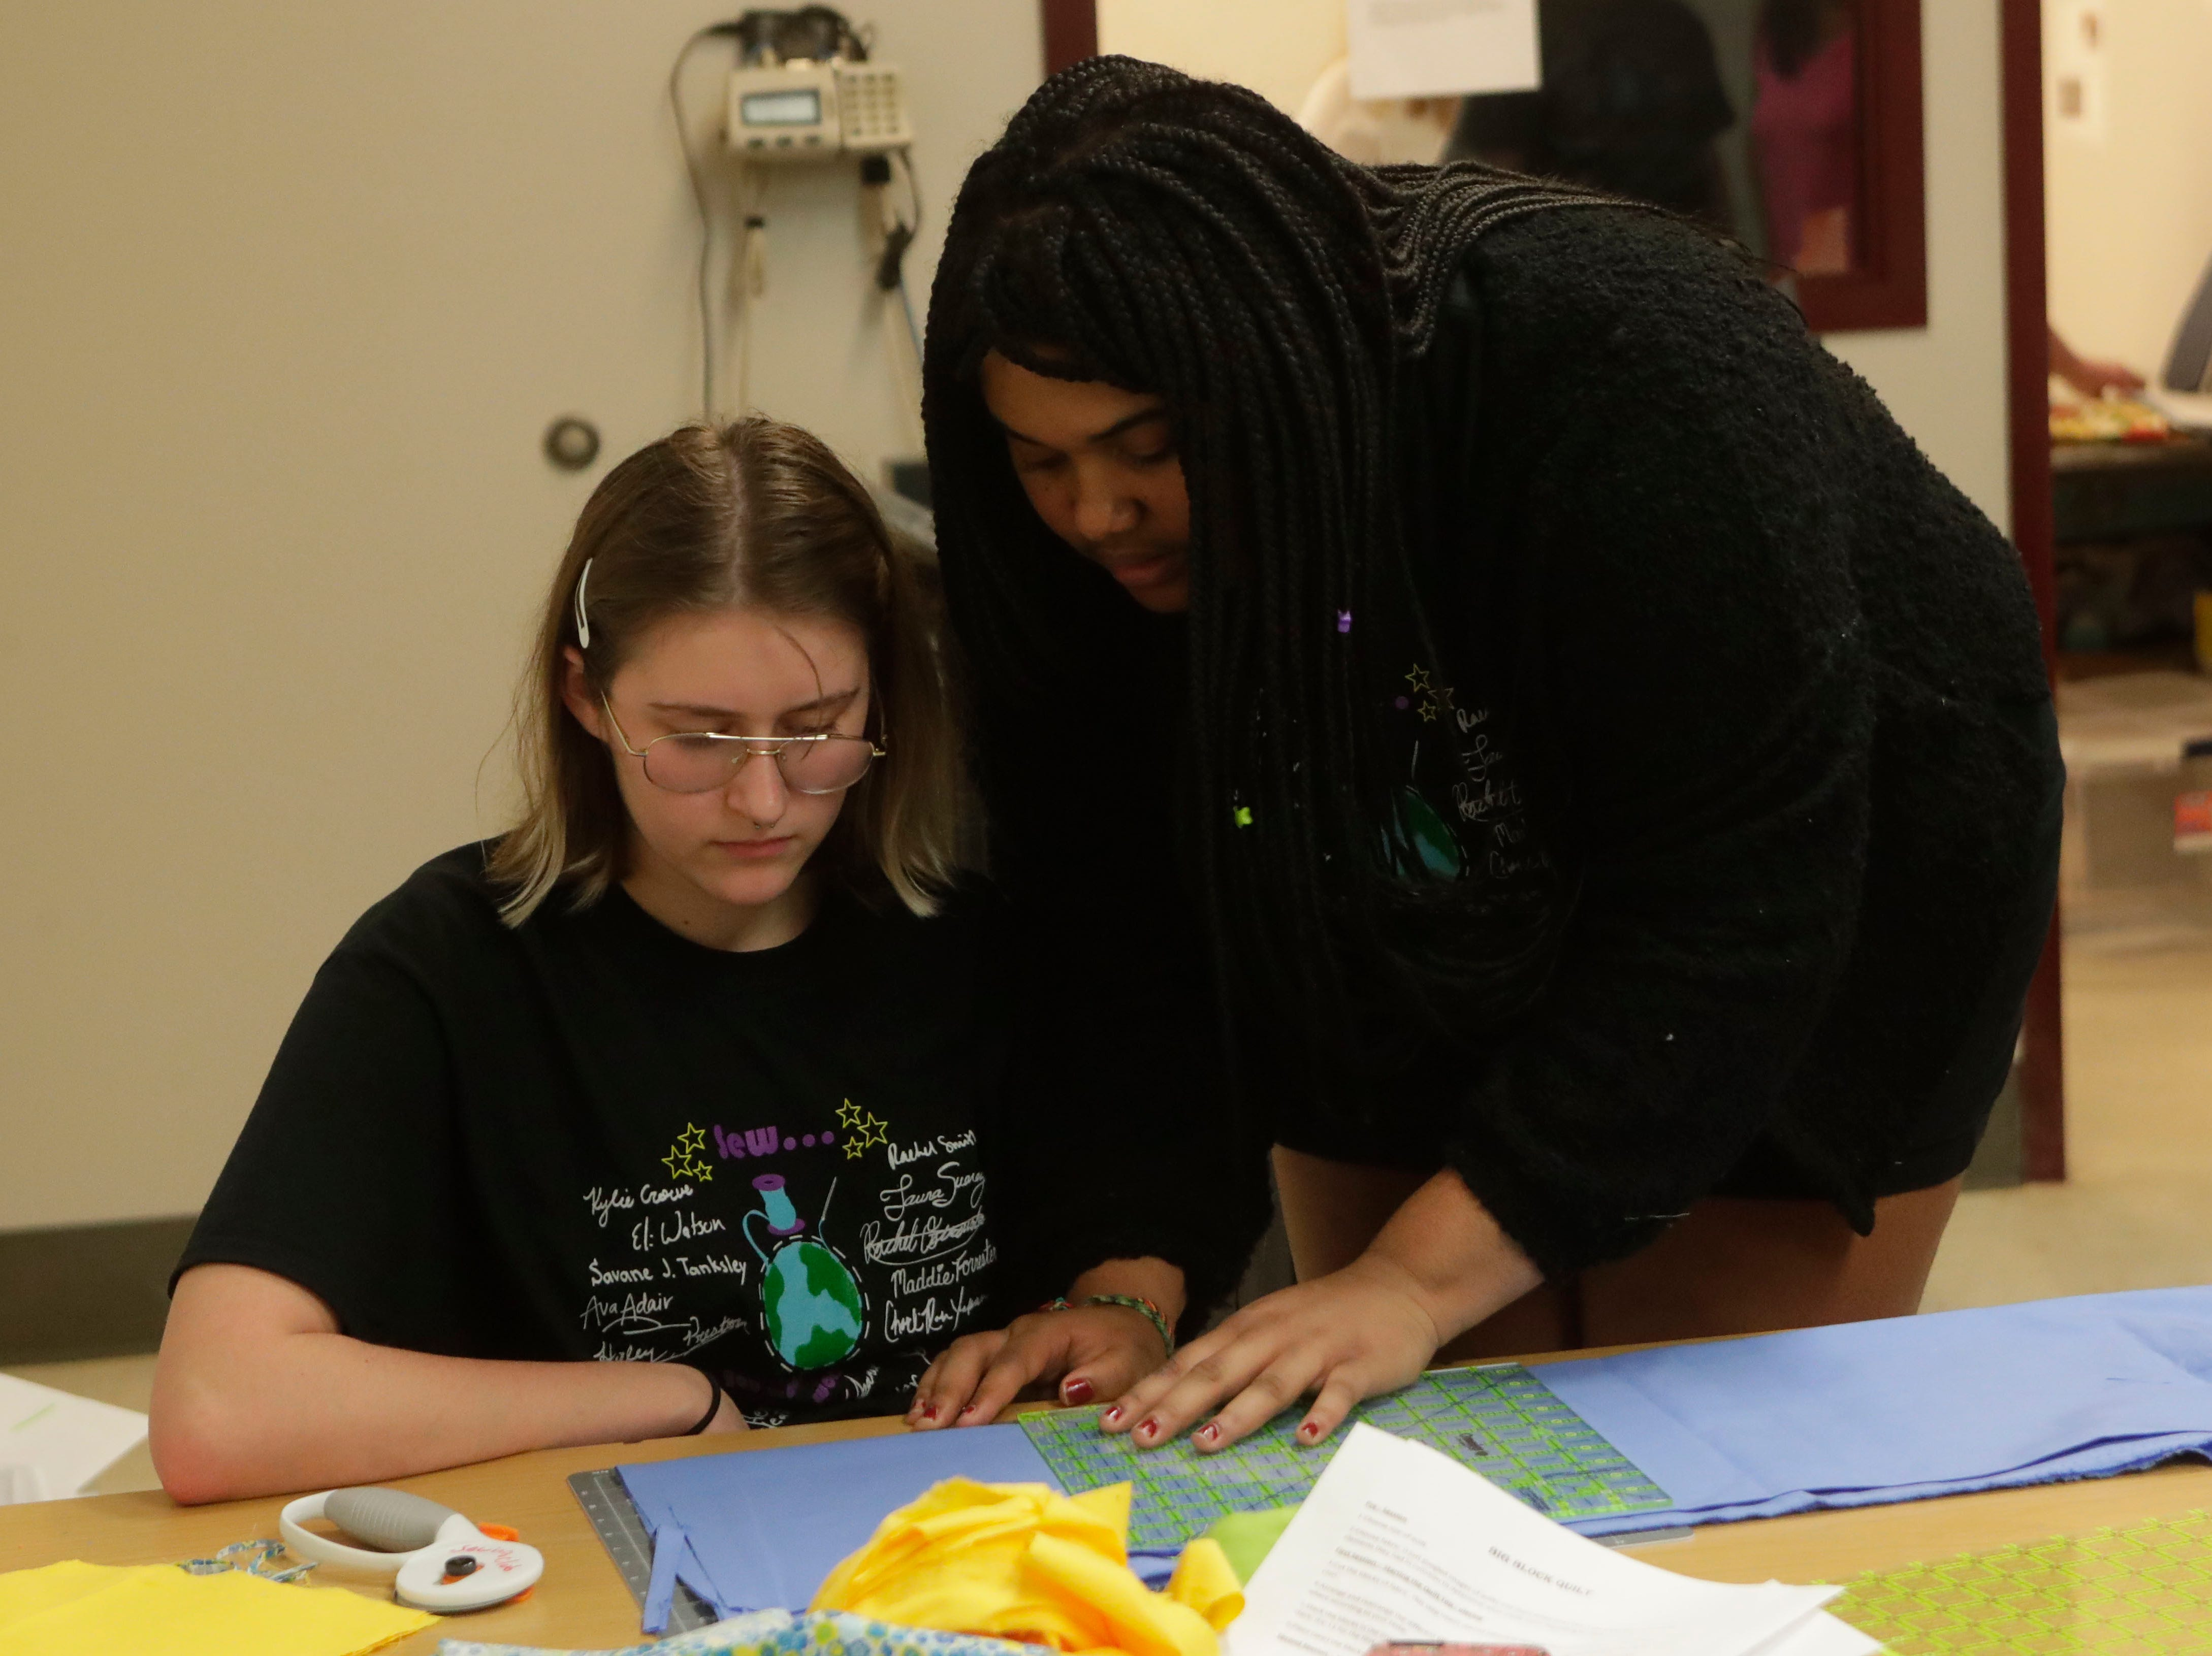 Mira Bolinder, a senior at Chiles High School and member of the Chiles Sewing Club, left, and Savannah Spannaus, president of the Chiles Sewing Club and a senior at Chiles High School, work together to measure squares of fabric which will be sewn into quilts for people at the refuge home, Thursday Feb. 21, 2019.